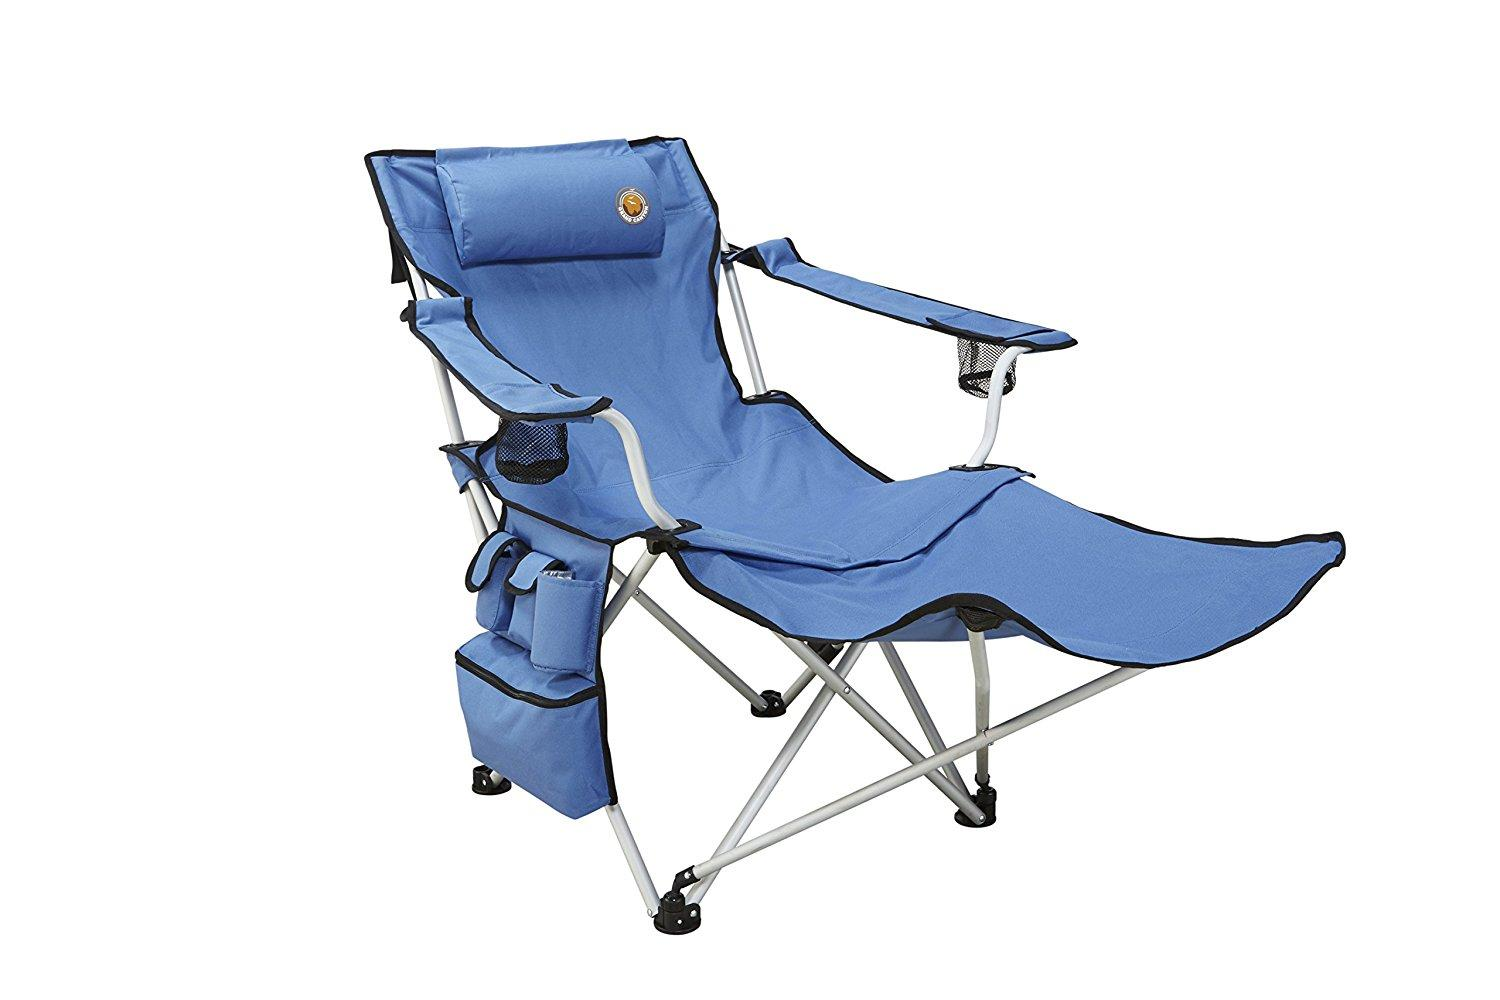 Grand Canyon Giga Folding Camping Chair With Footrest